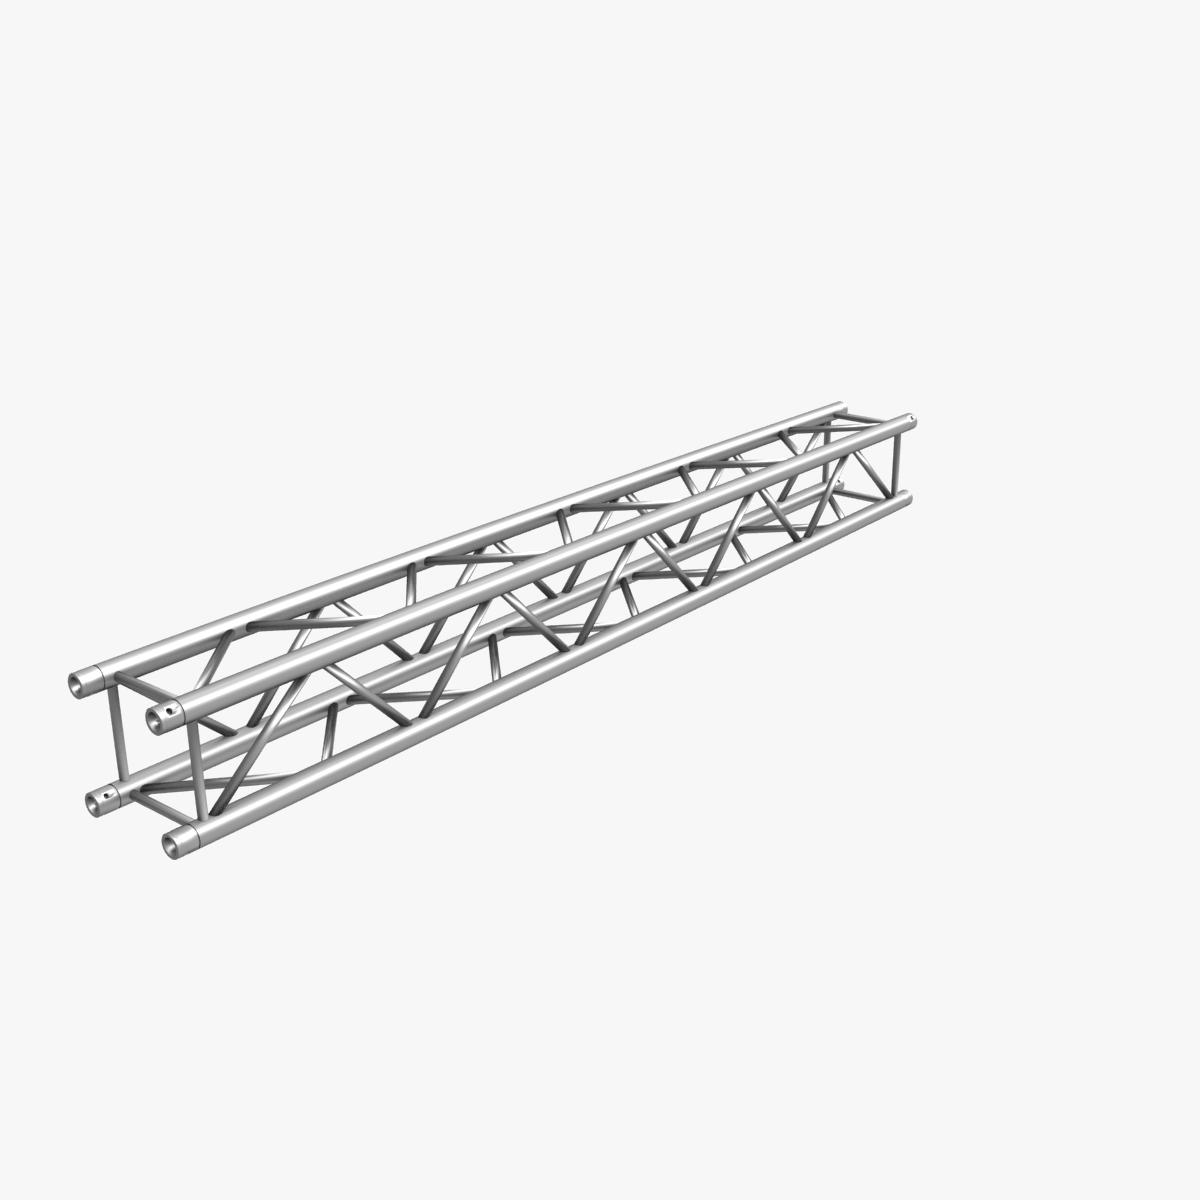 square truss standard (collection 24 modular) 3d model 3ds max dxf fbx c4d dae  texture obj 216335